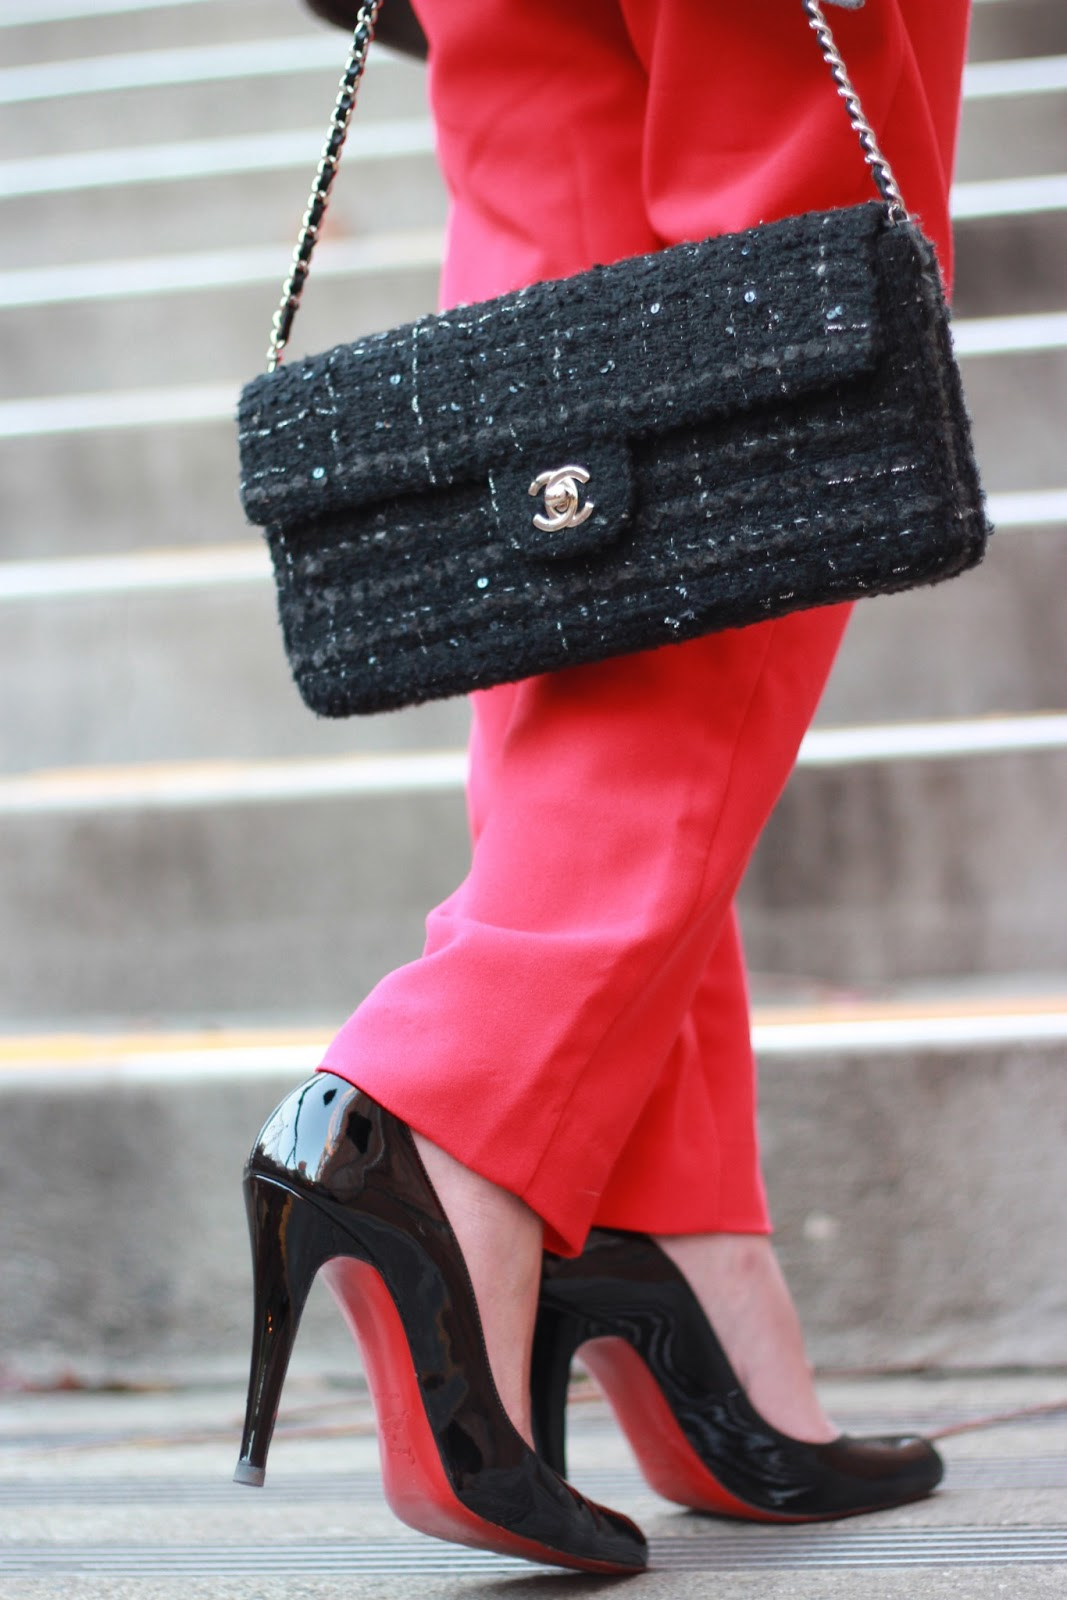 chanel tweed flap christian louboutin pumps black patent